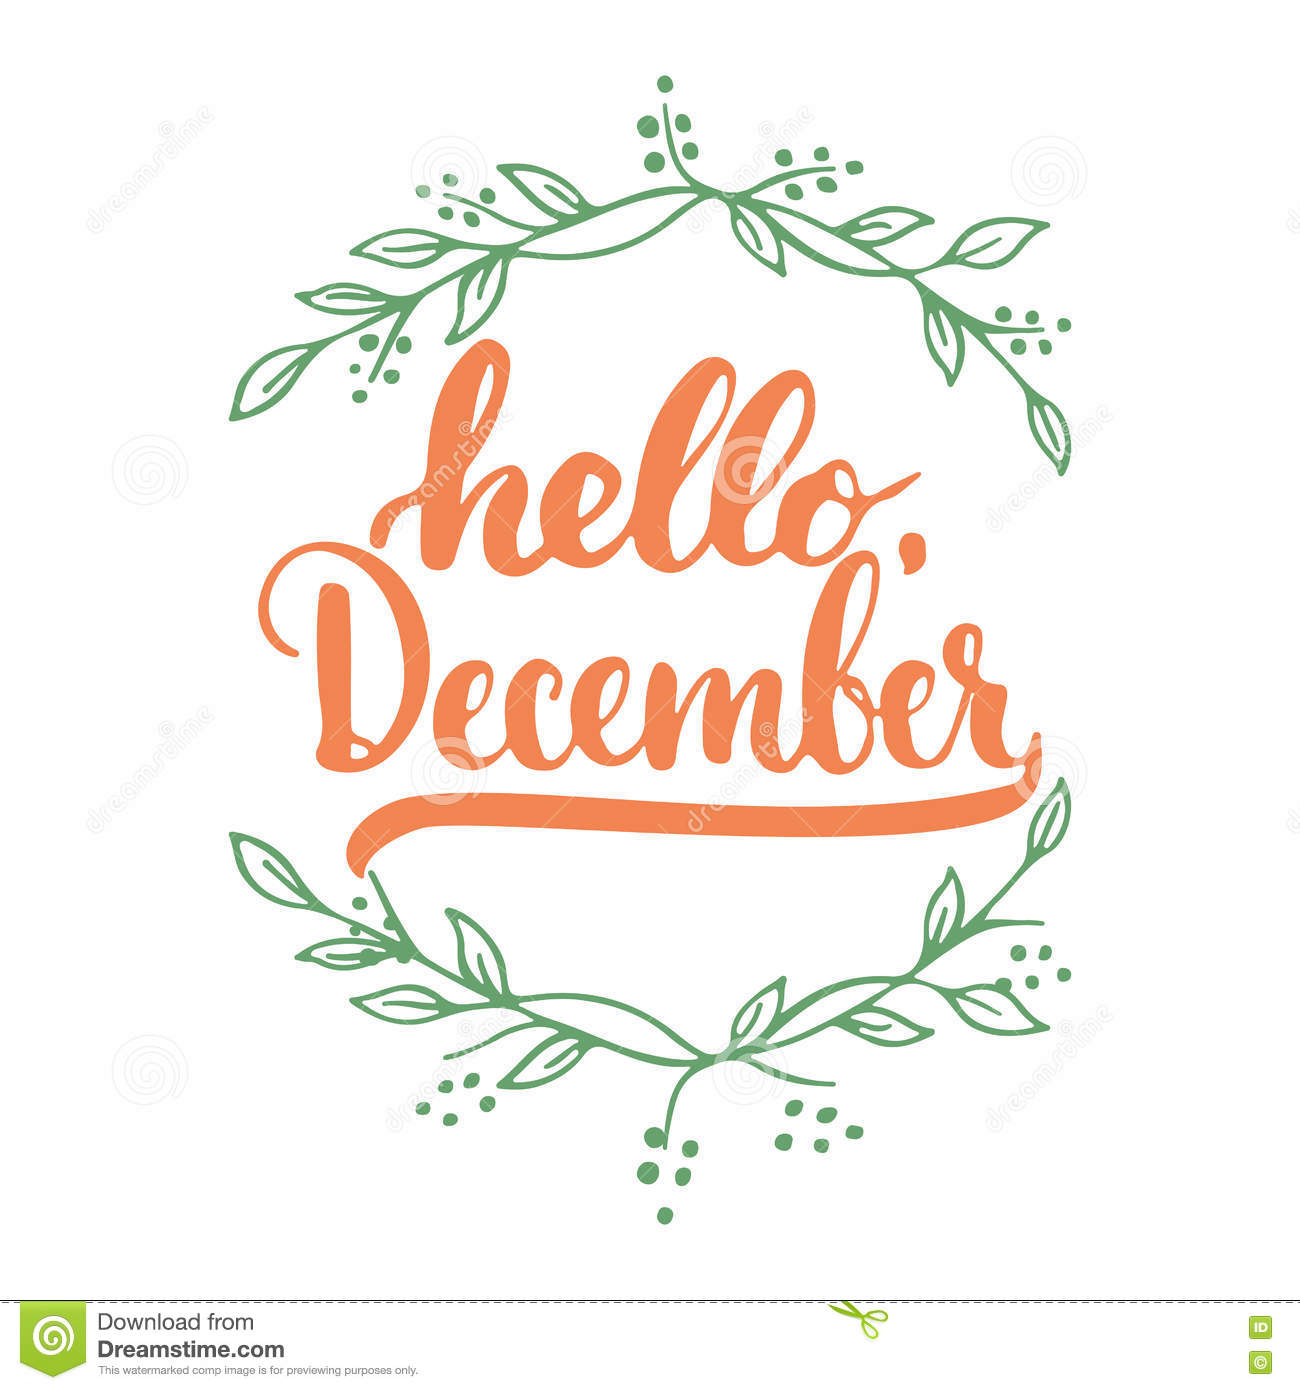 Hand drawn typography lettering phrase Hello, December isolated on the white background with leaves. Fun brush ink